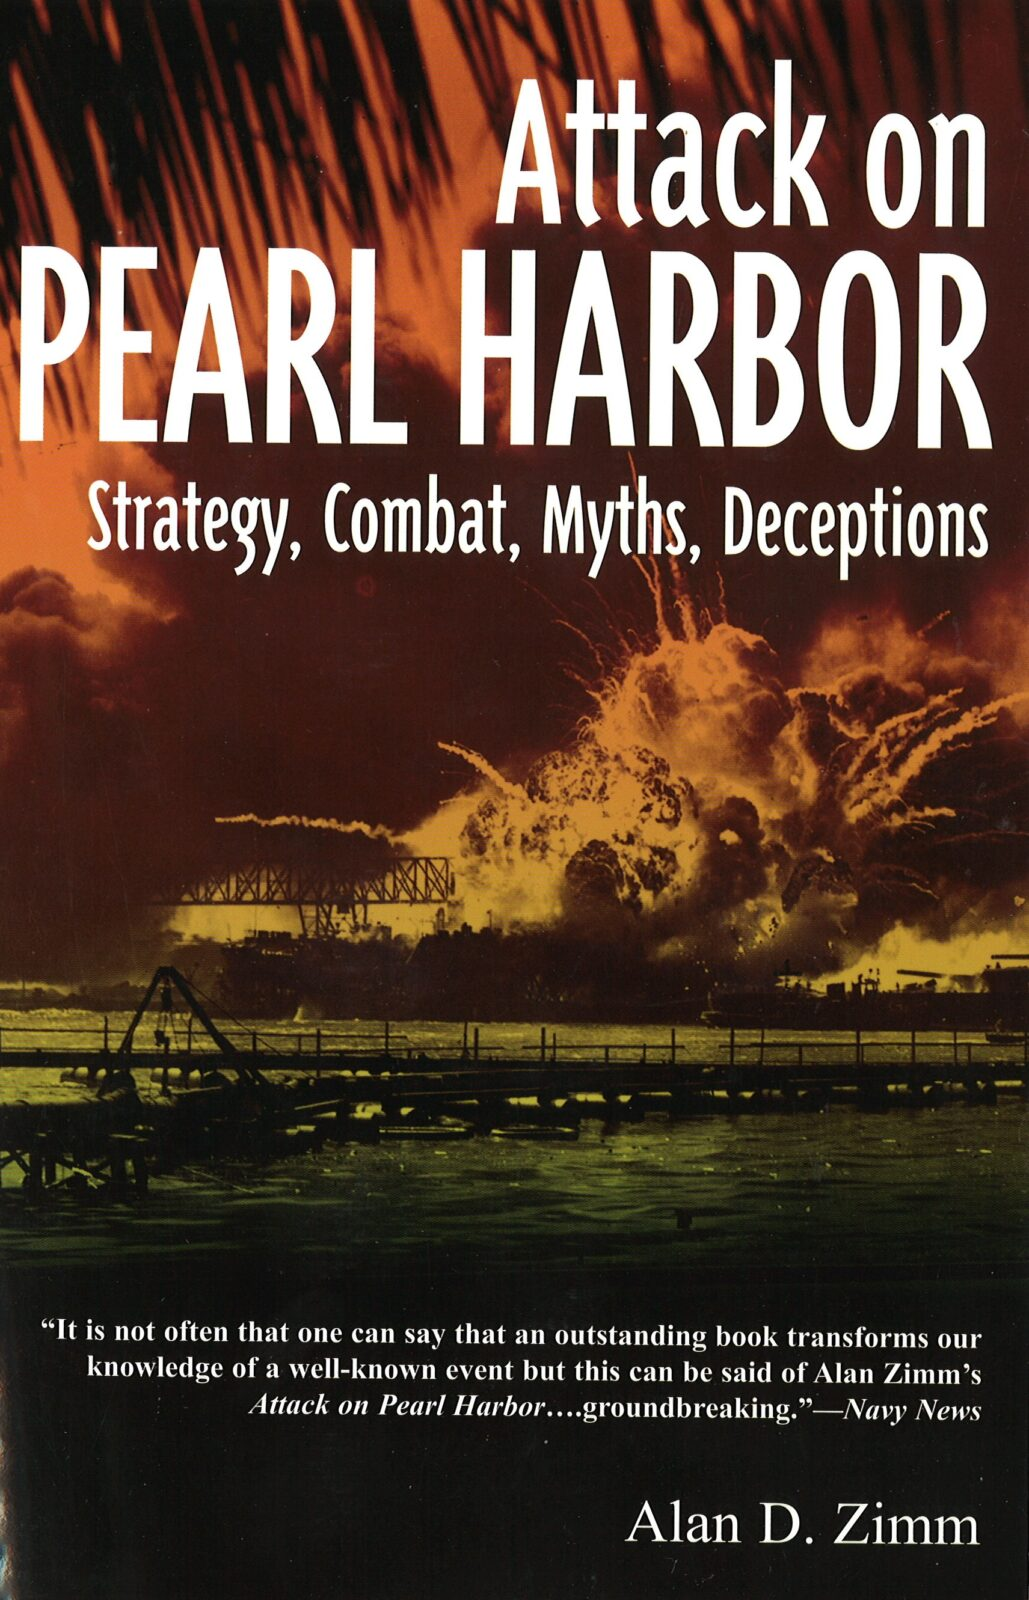 Pearl Harbor Dates And Facts   Beautiful Pearls Design Fires burn on an airfield after the surprise attack by Japanese forces on  Pearl Harbor Dec            University of Arizona Special Collections